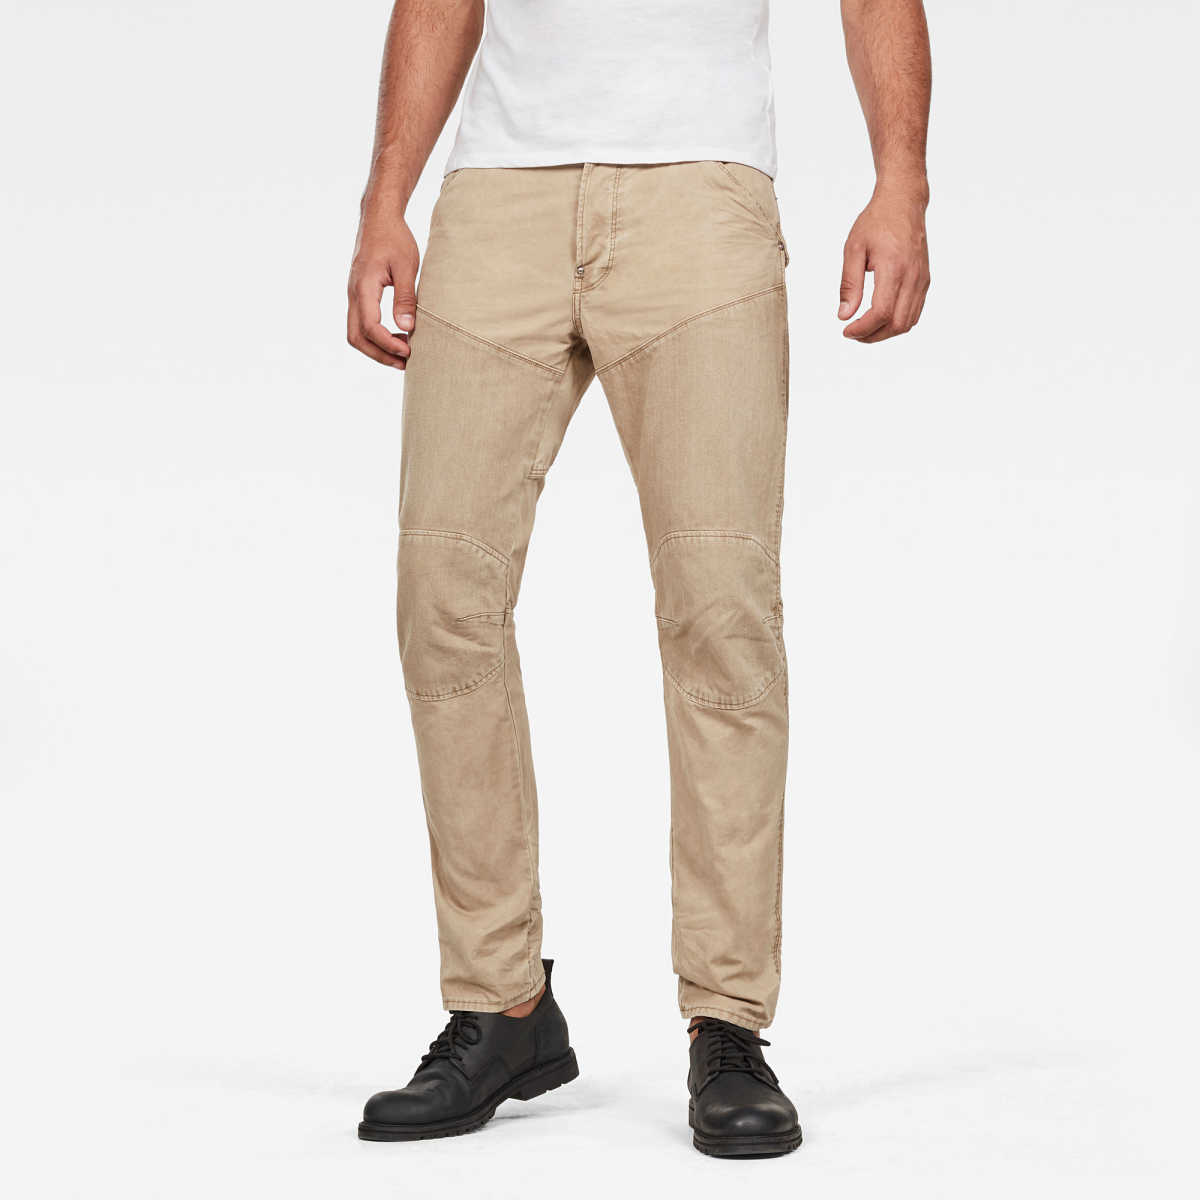 G-Star Male 5620 Straight Tapered Jeans Tapered Beige USA - GOOFASH - Mens JEANS